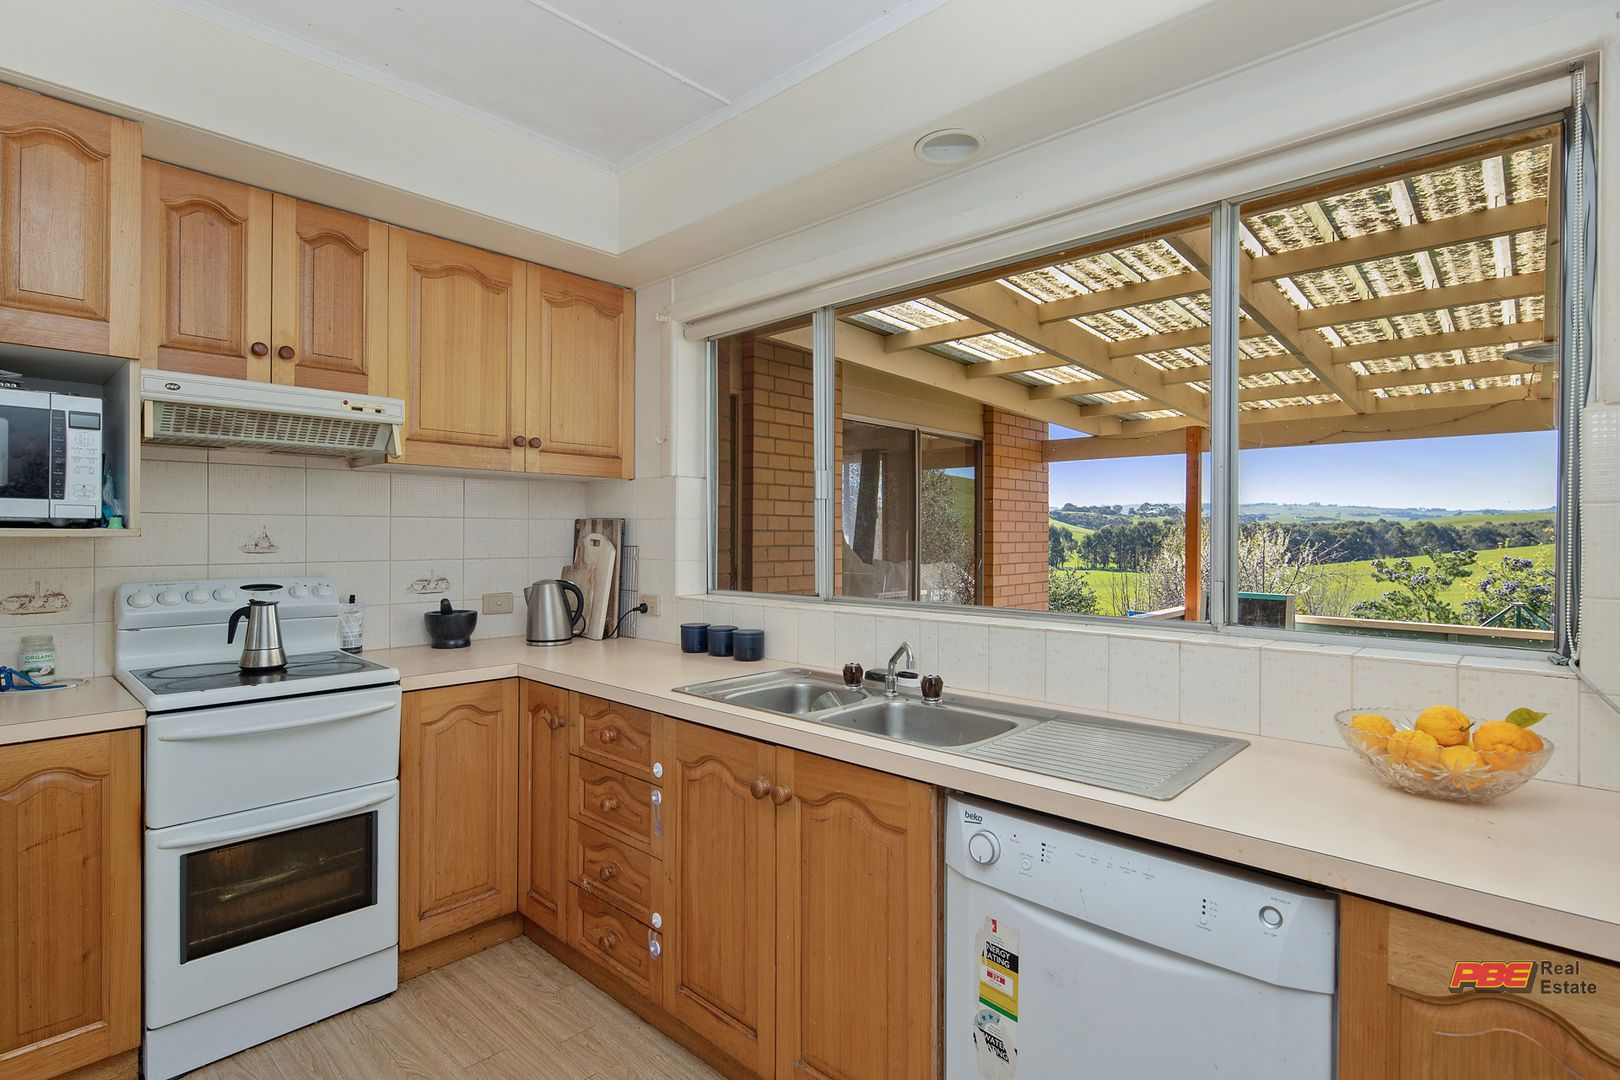 113 Archies Creek Road, Archies Creek VIC 3995, Image 2